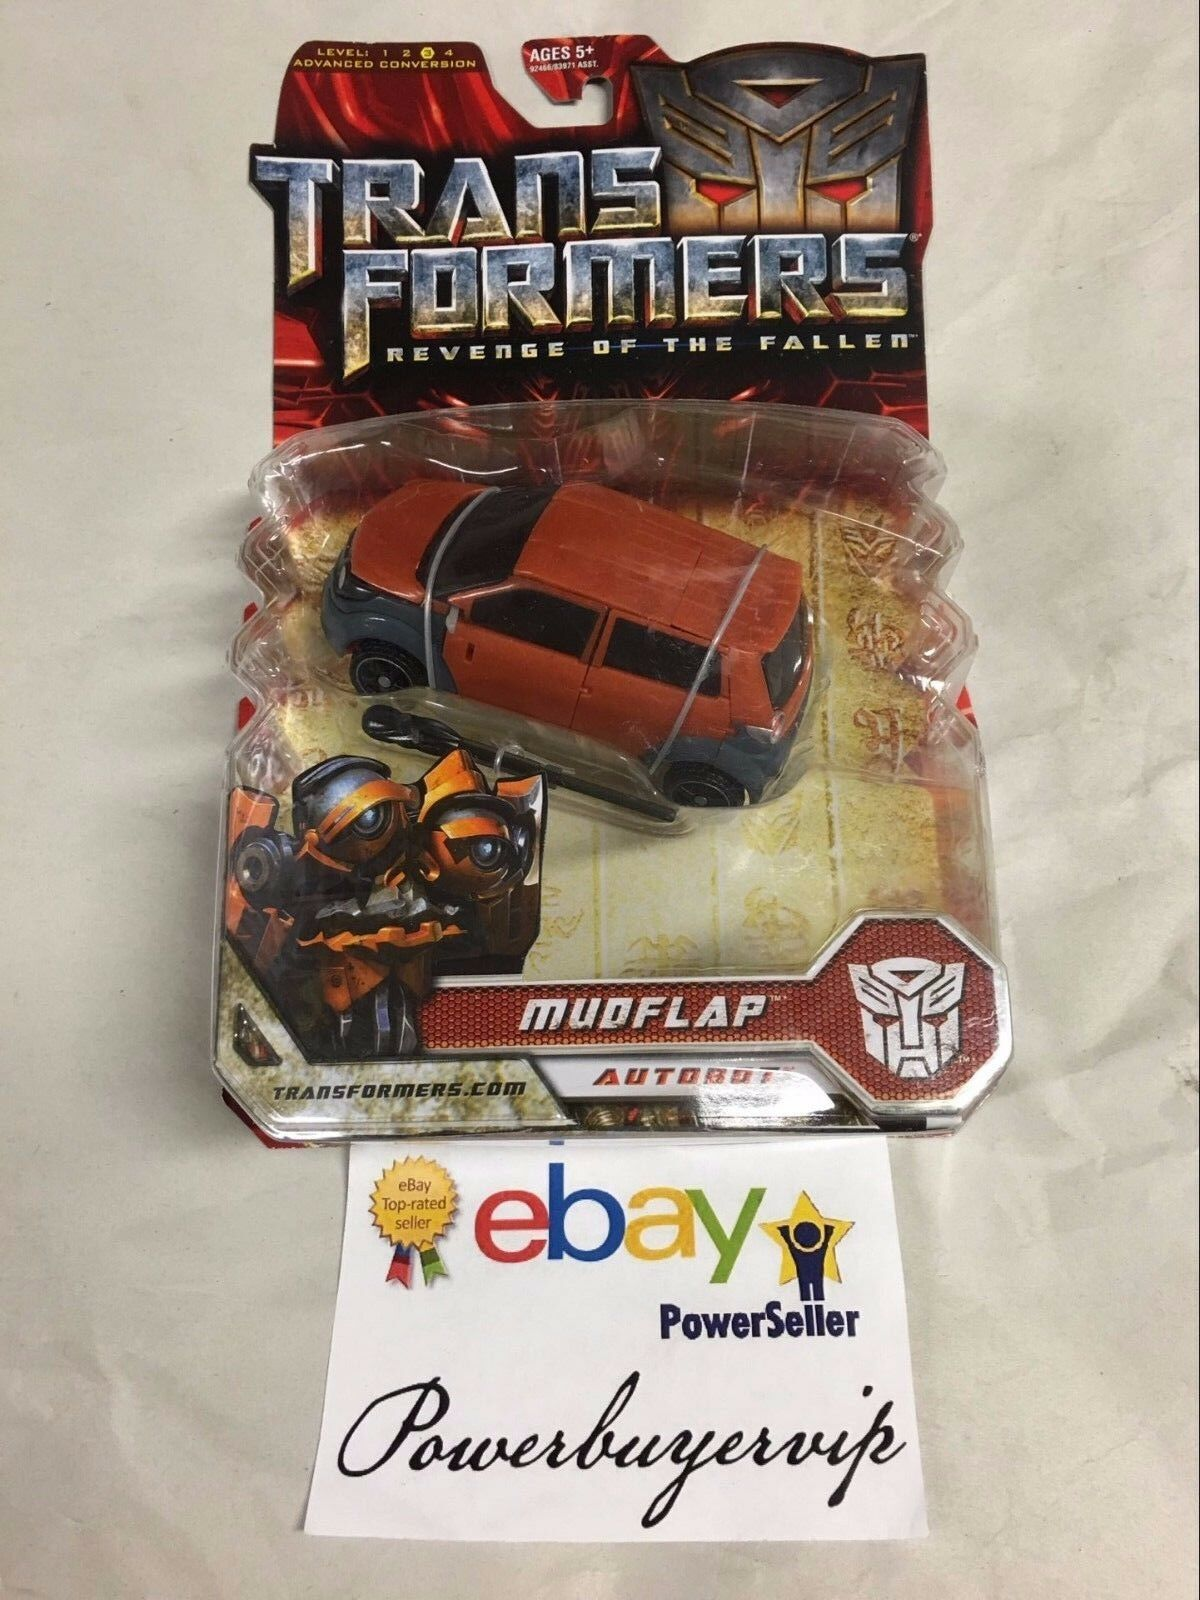 NEW Hasbro Transformers Movie 2 Deluxe MUDFLAP Action Figure 2 DAY GET